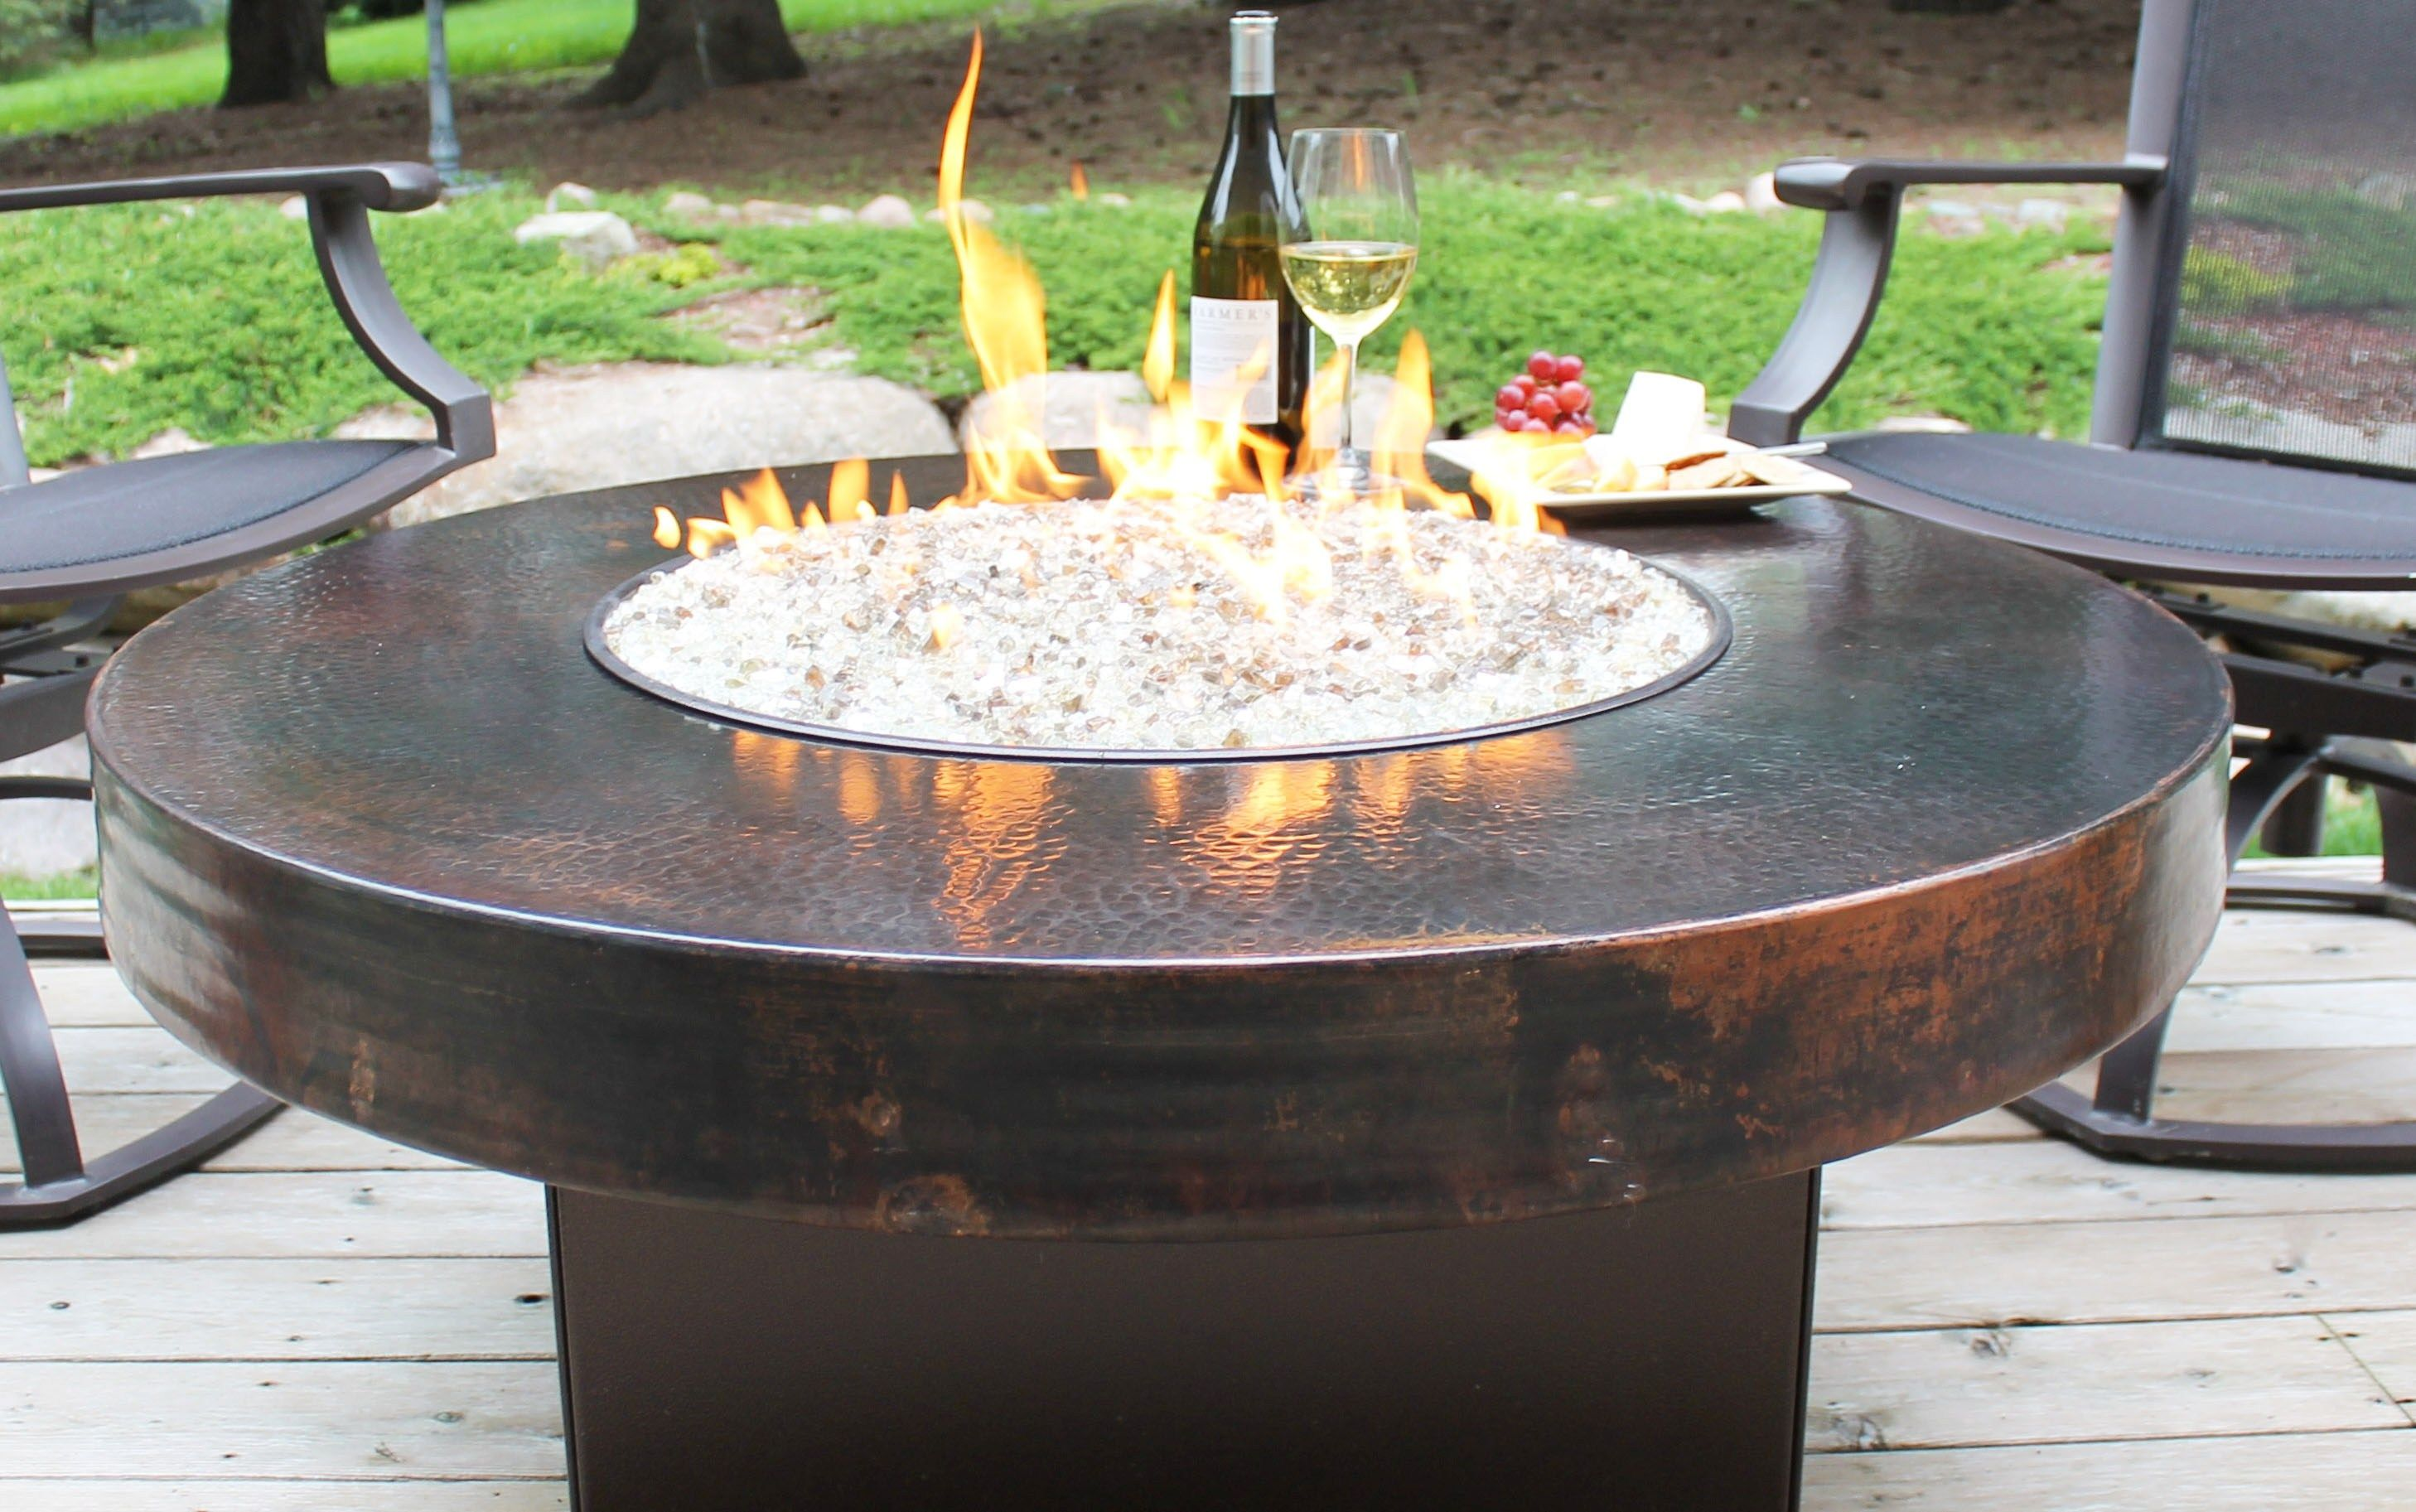 How To Make Tabletop Fire Pit Kit Diy For Outdoor Gas Fire Pit